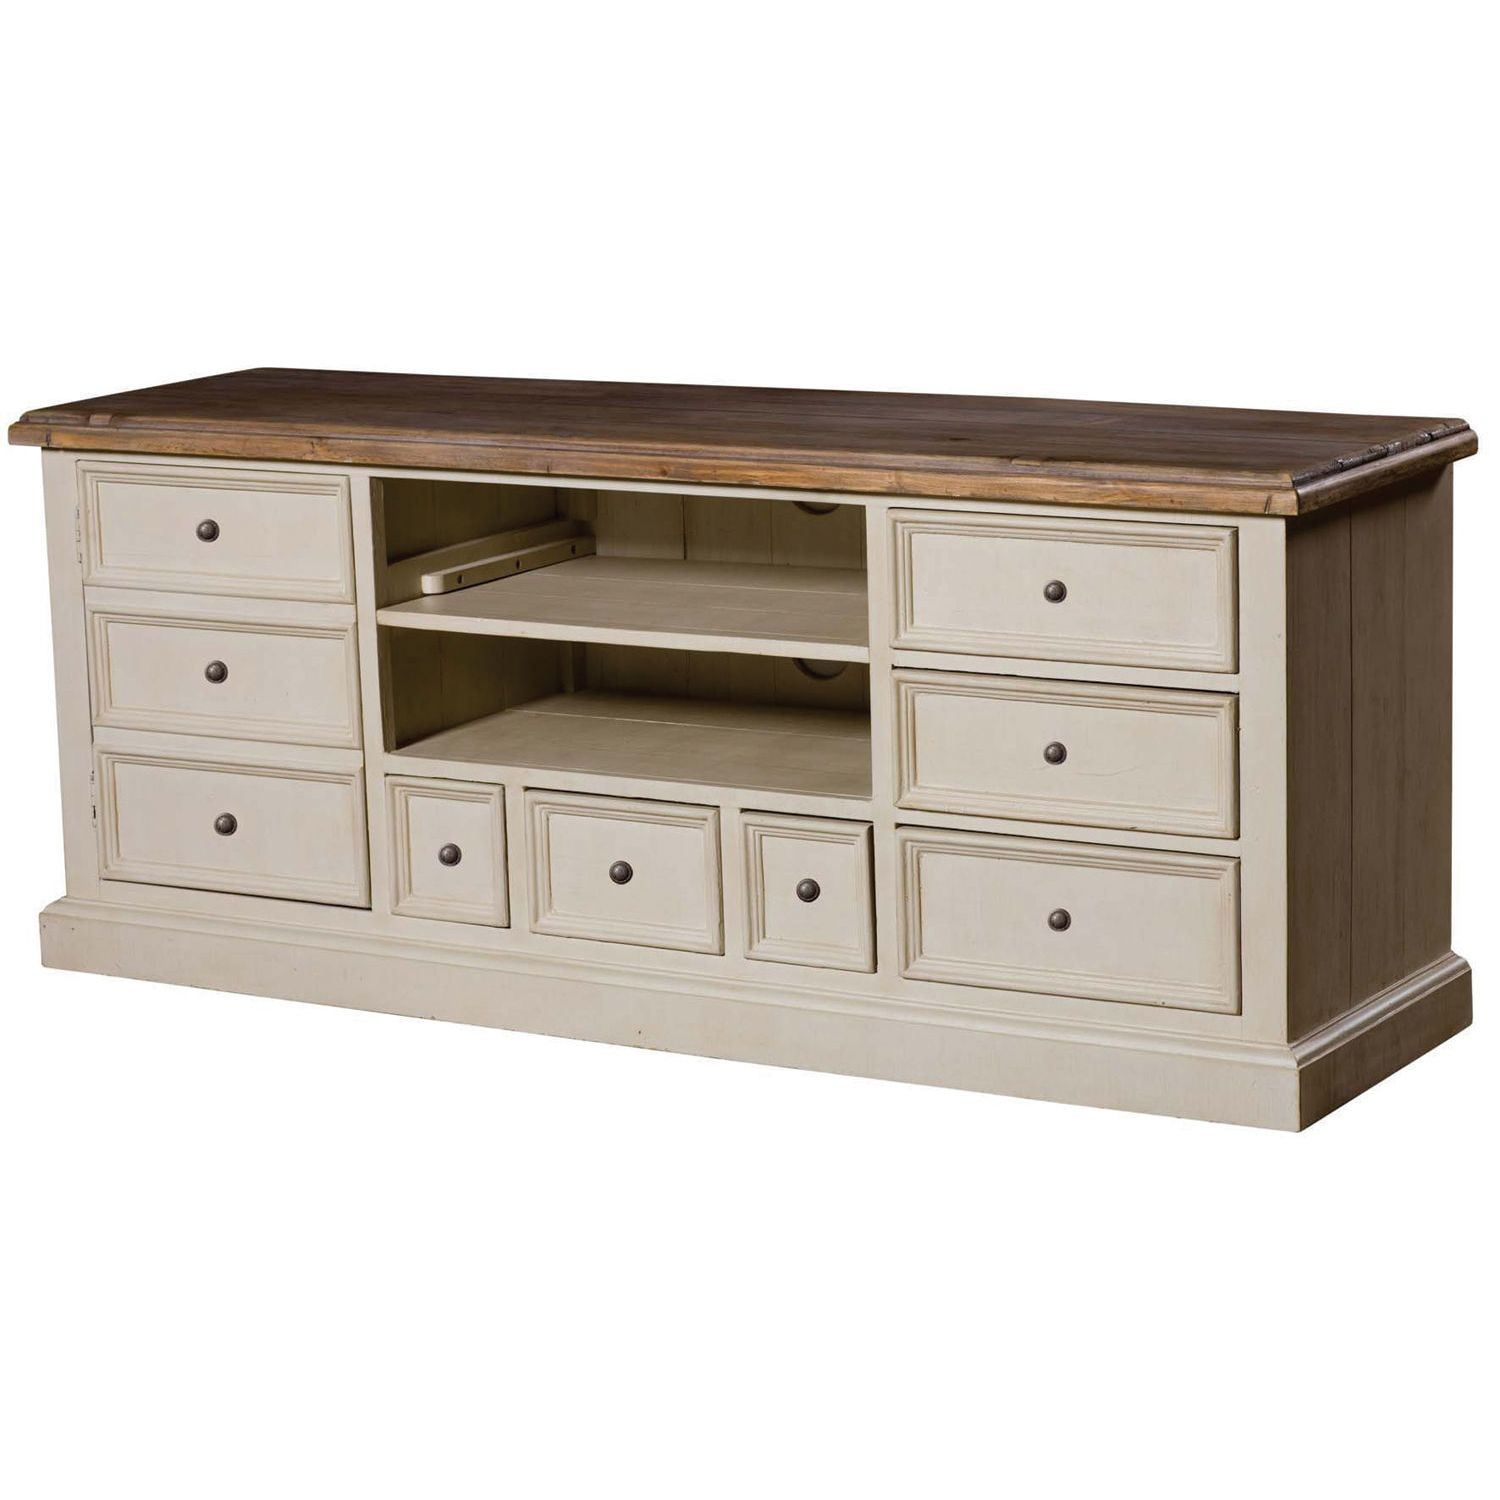 This LCD TV Stand has the white washed finish of a sea-sprayed ...